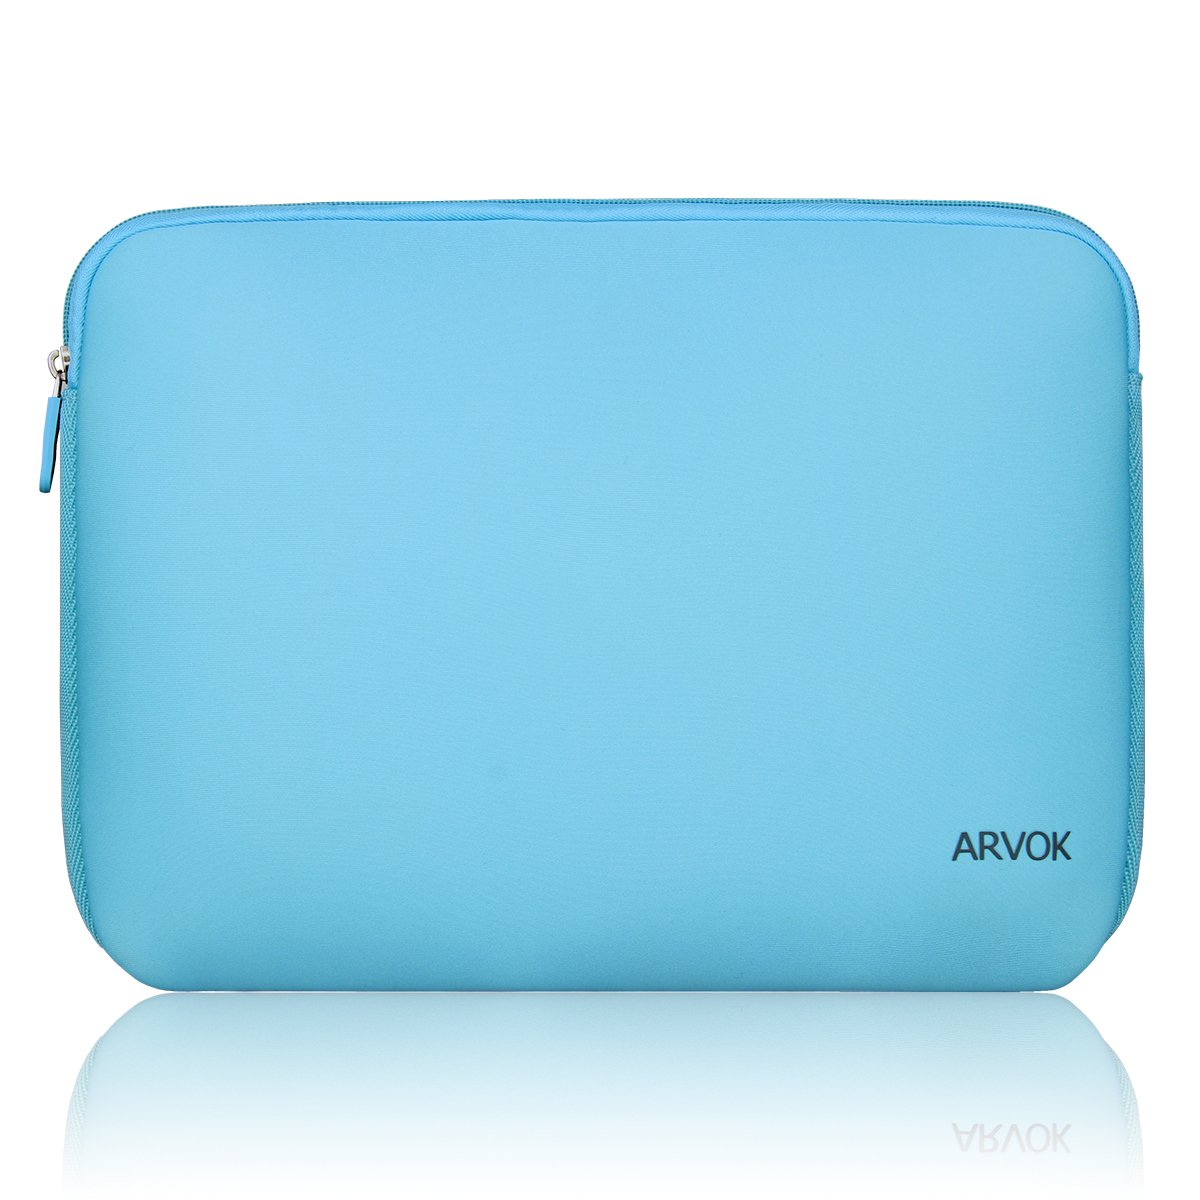 Arvok 13-14 Inch Laptop Sleeve Multi-Color & Size Choices Case/Water-Resistant Neoprene Notebook Computer Tablet Carrying Bag Cover, Baby Blue